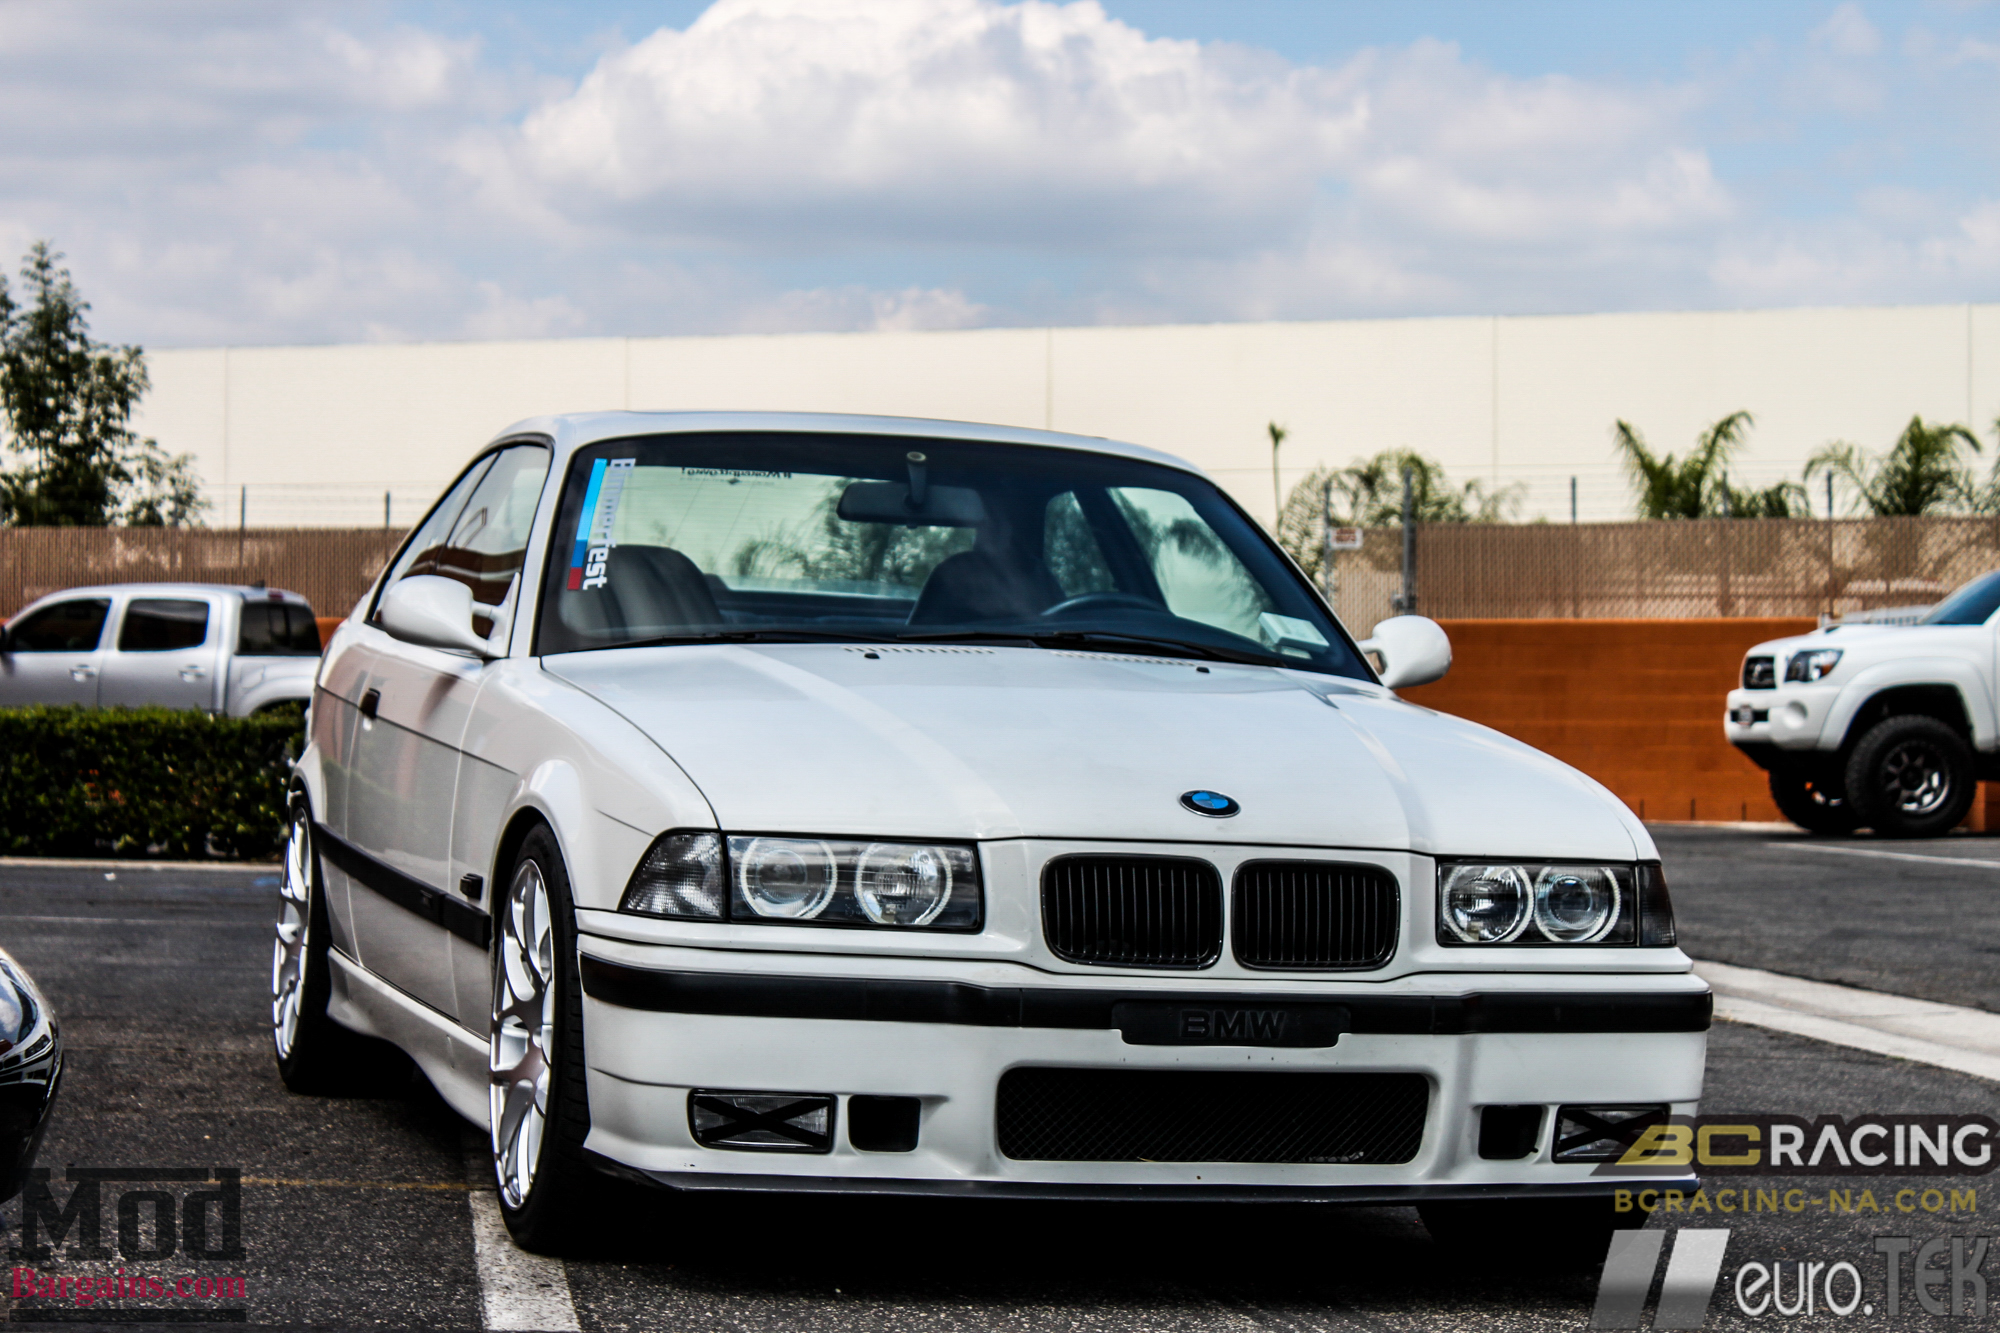 E36 Bmw M3 On Bc Coilovers Eurotek Wheels